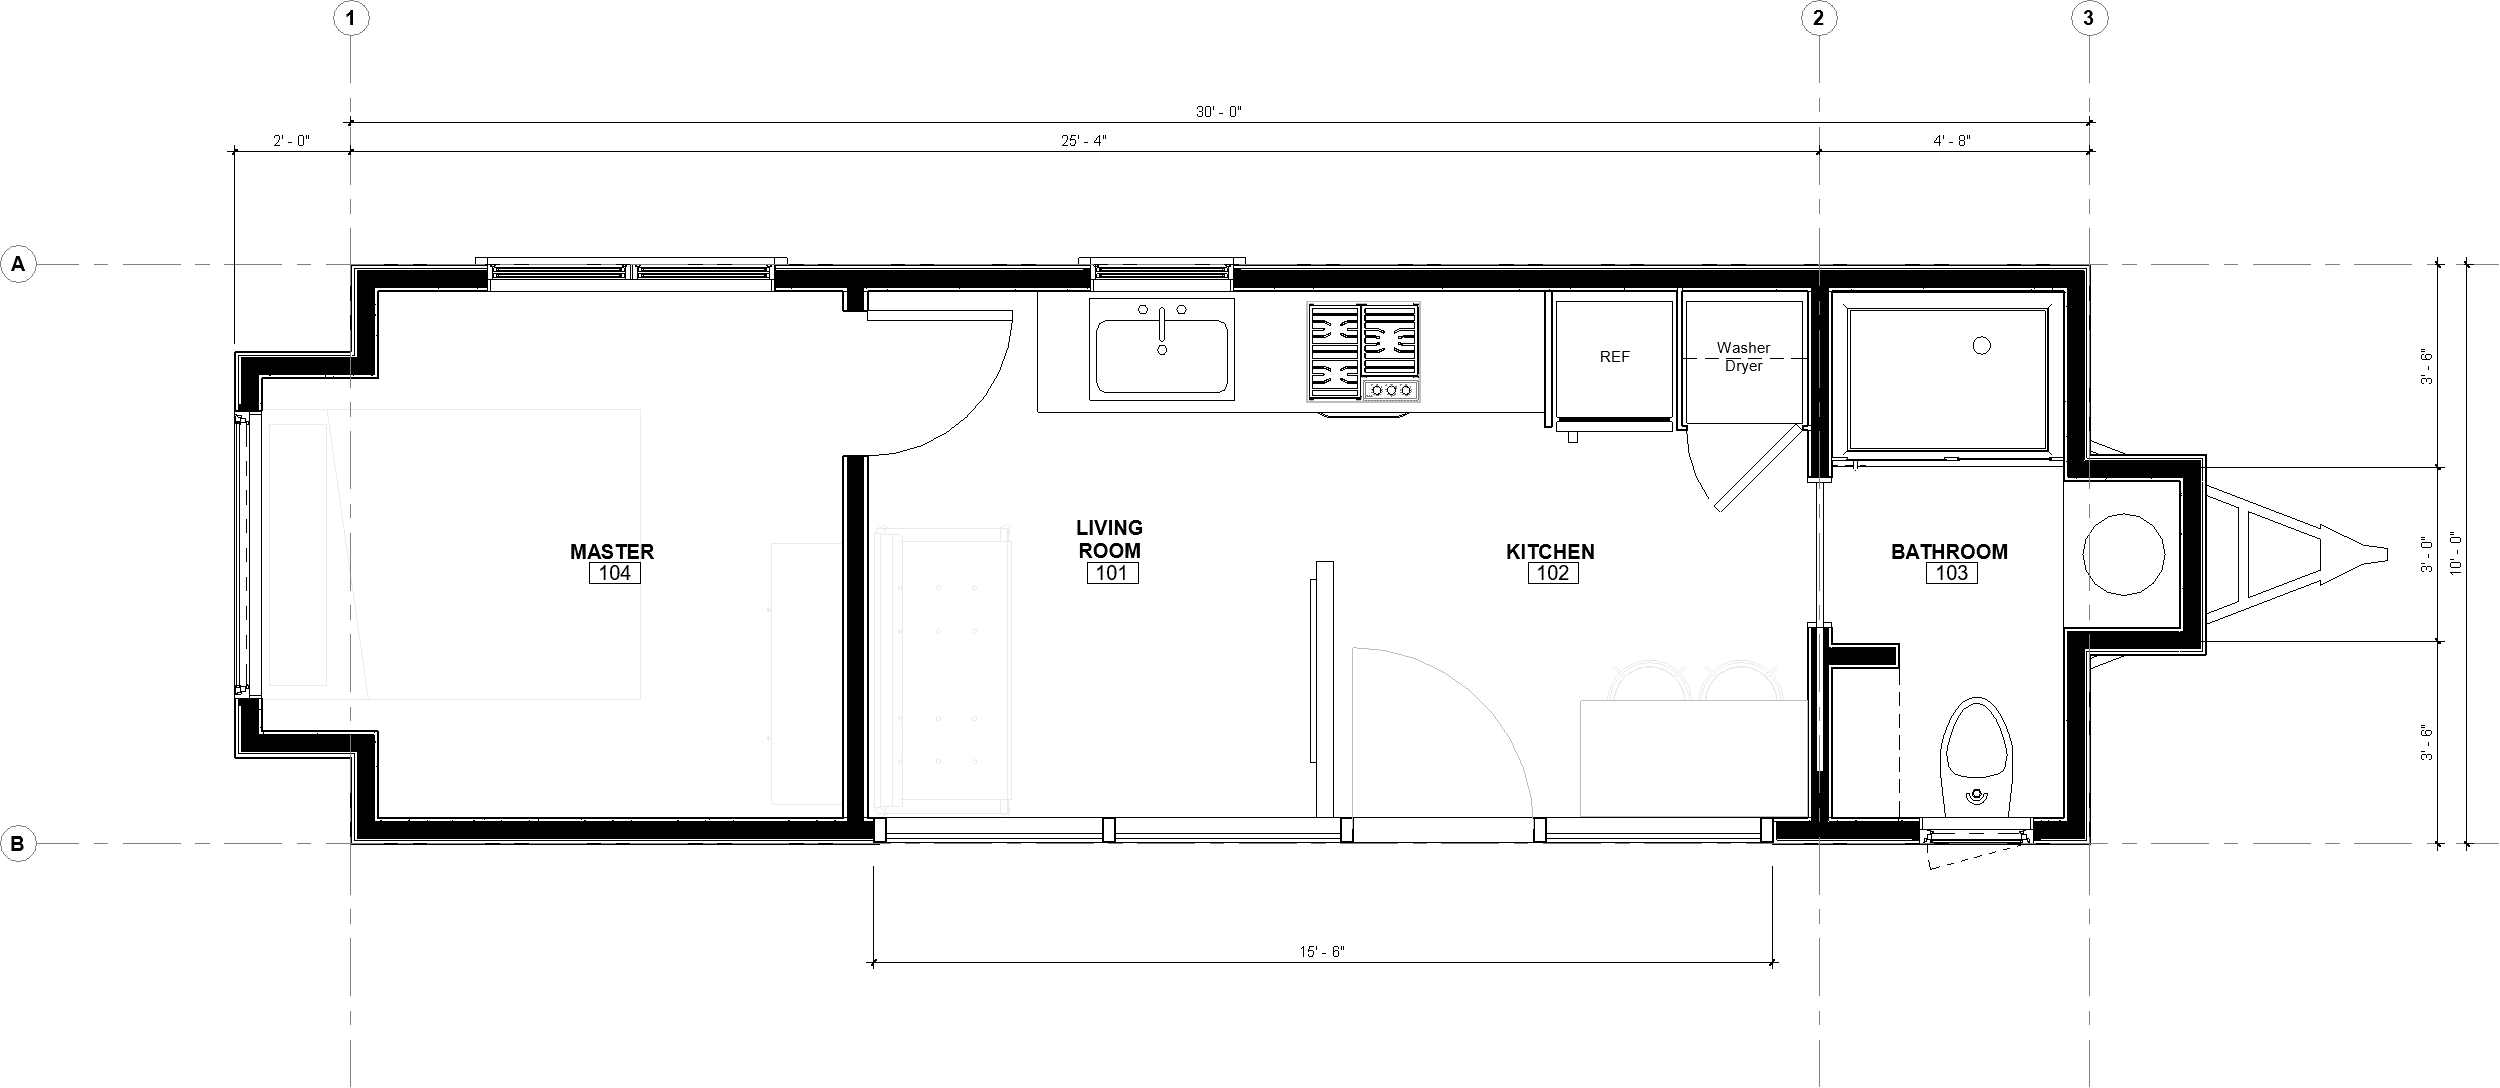 30ft Master on Main Etowah floorplan with dimensions